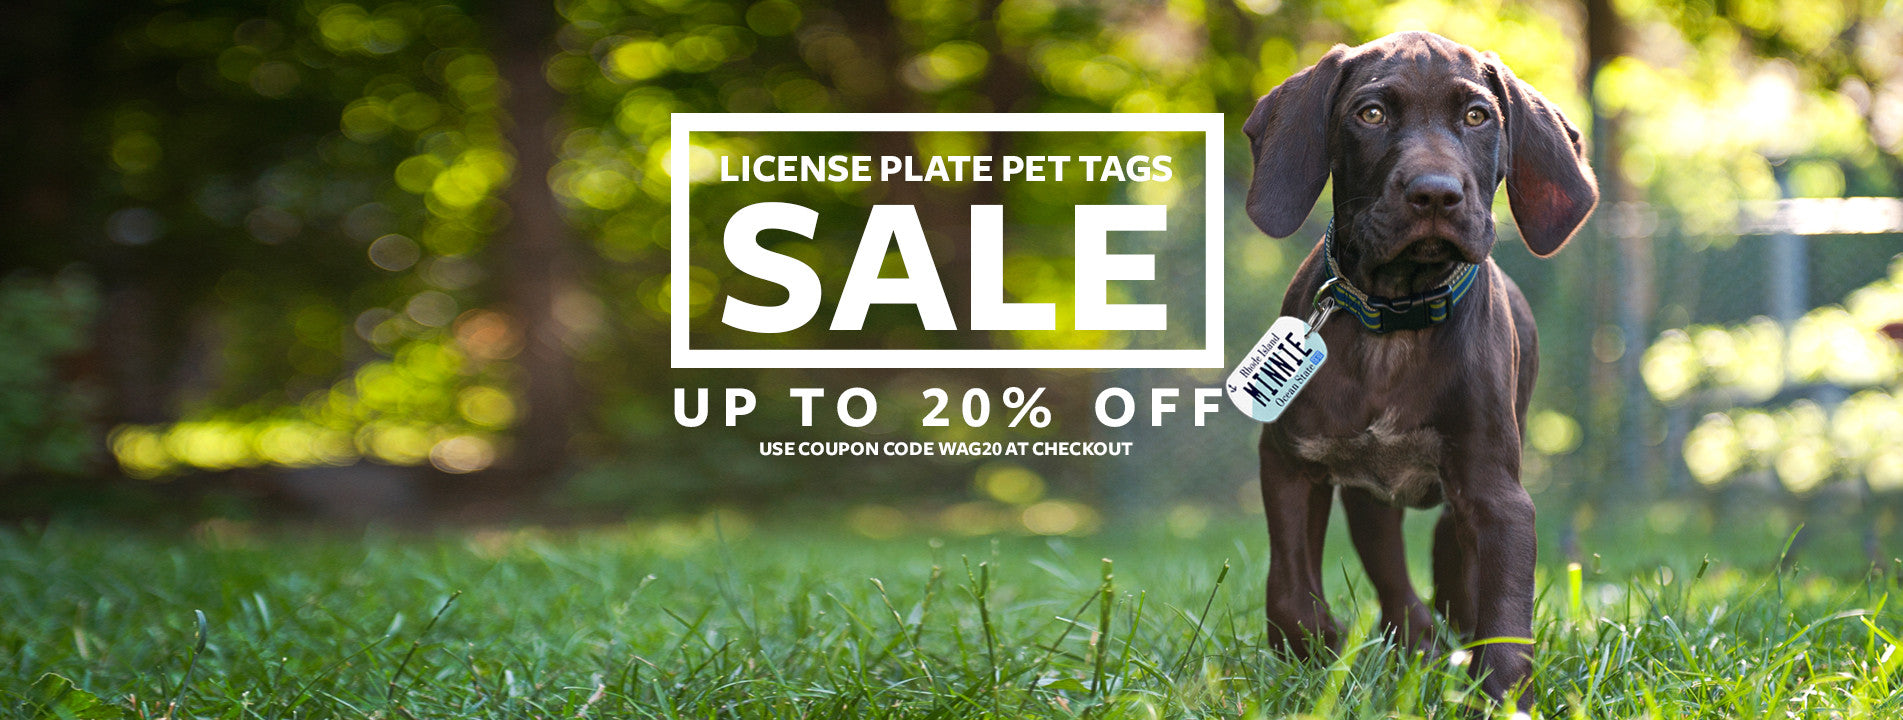 License Plate Pet Tags for Dogs and Cats